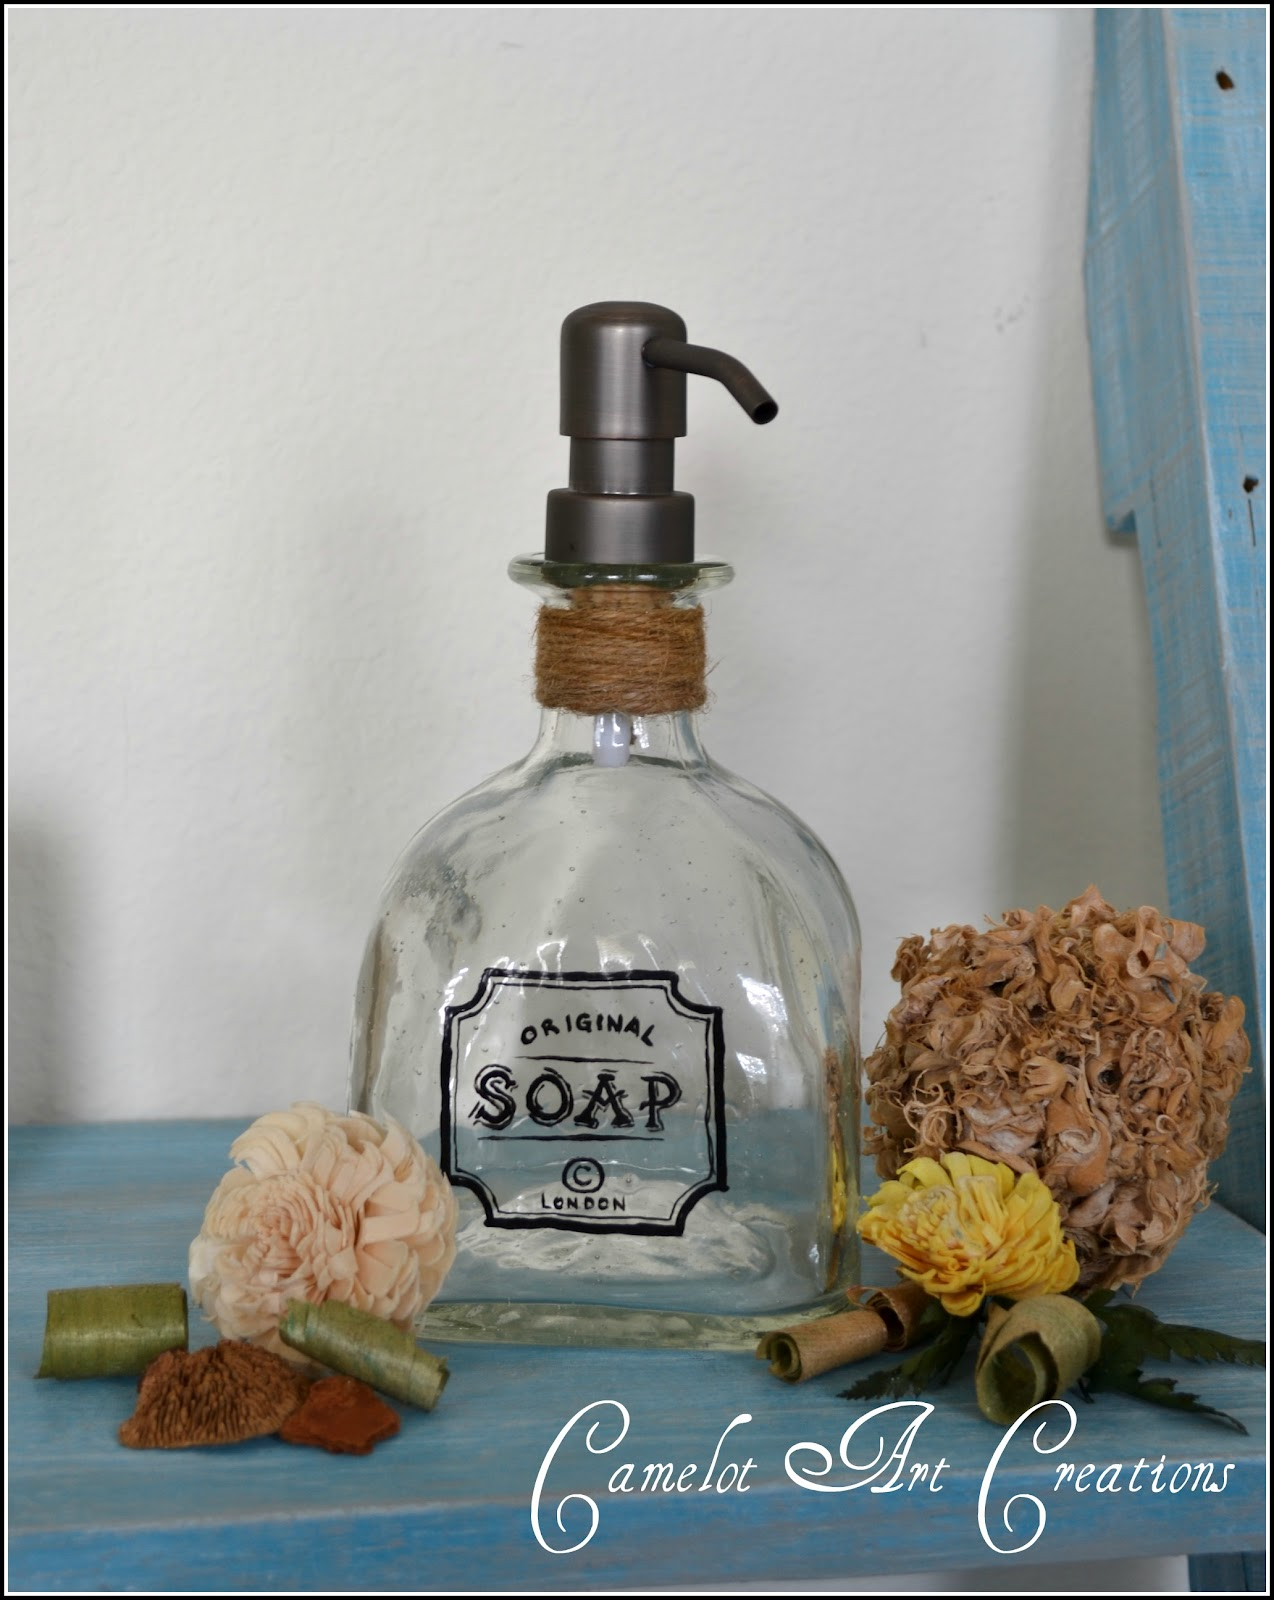 Camelot art creations up cycled soap dispensers patron for Liquor bottle art